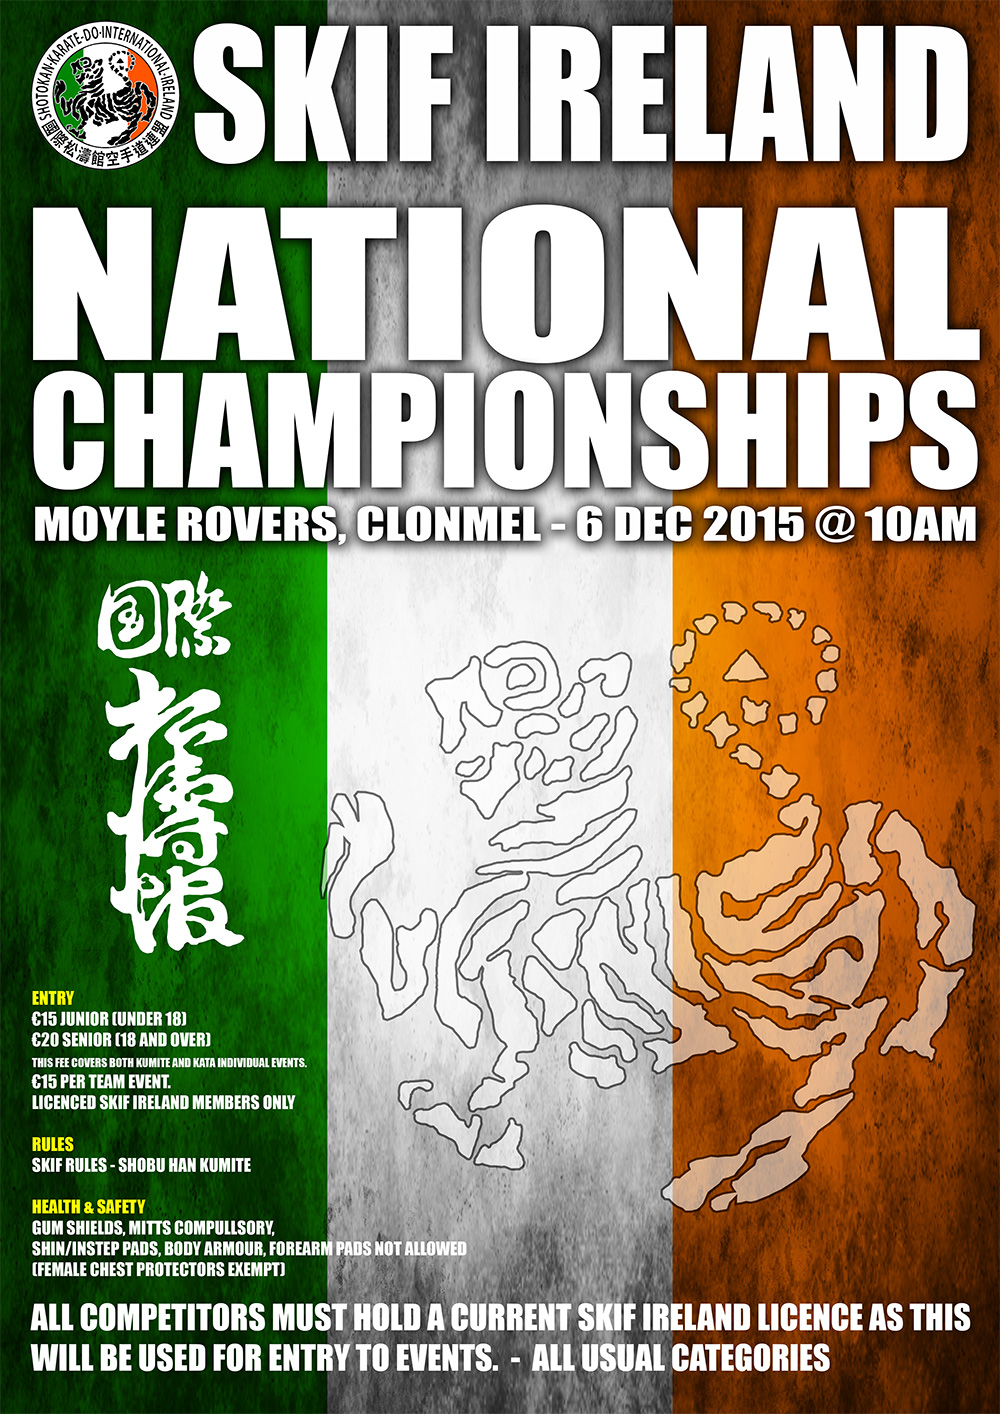 The SKIF Ireland National Championships 2015 will take place in Moyle Rovers GAA on December 6th 2015